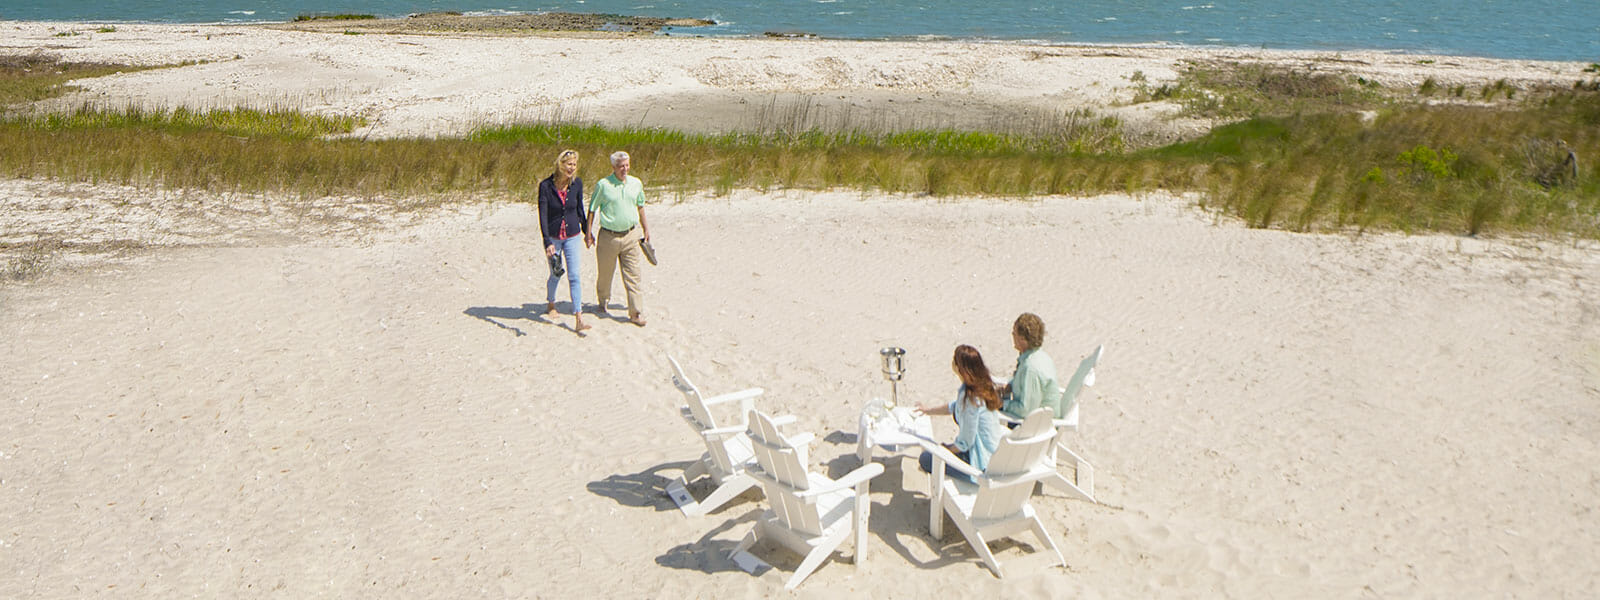 Haig Point Club | Gated Coastal Community near Hilton Head Daufuskie Island SC